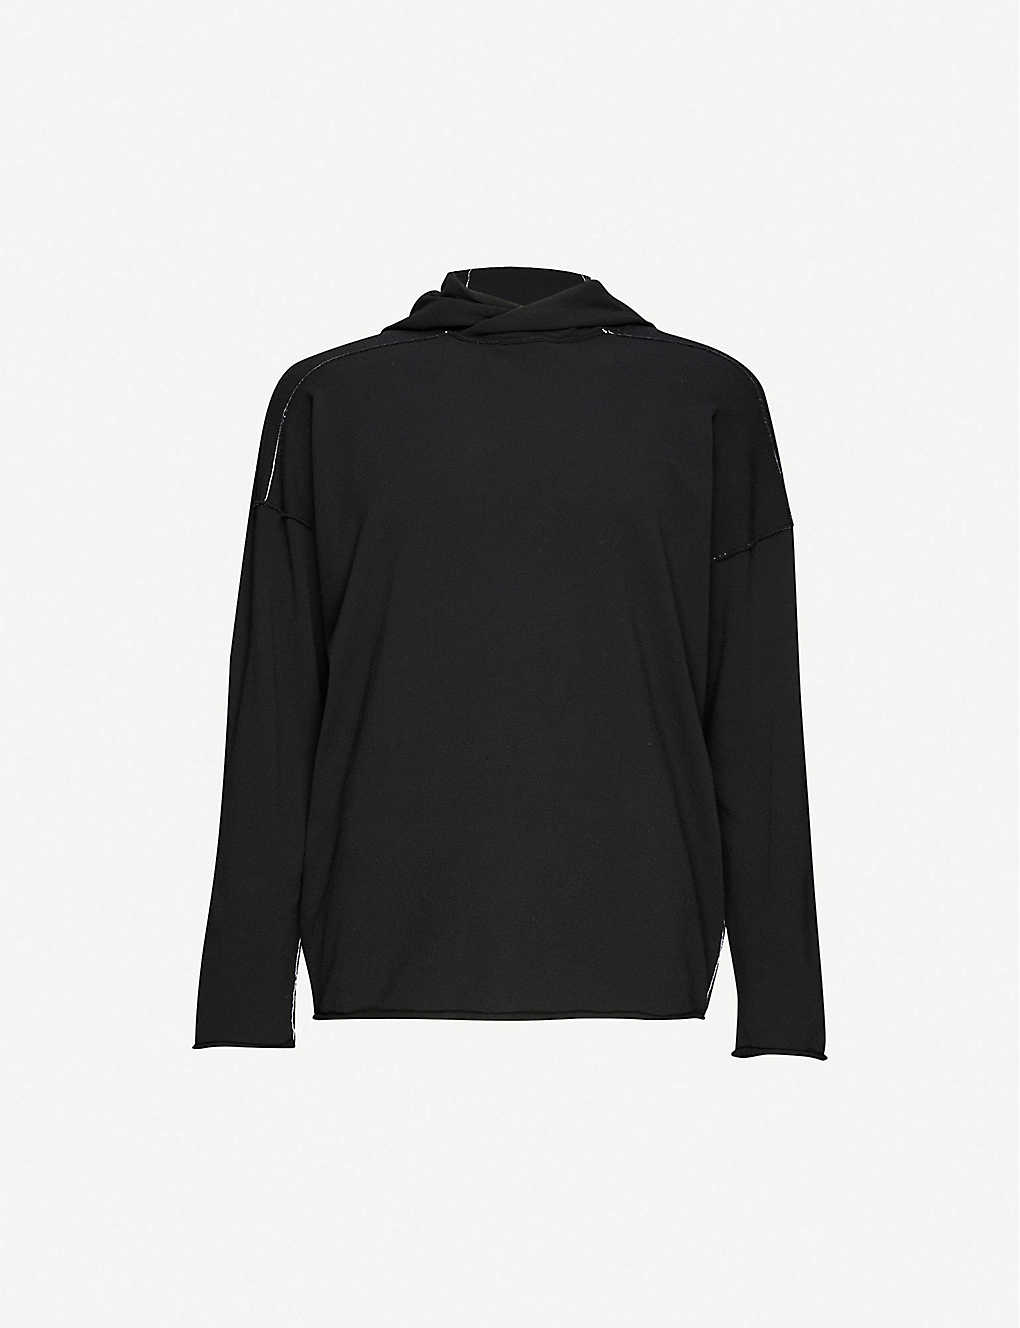 ISABEL BENENATO: Contrast stitch woven hoody